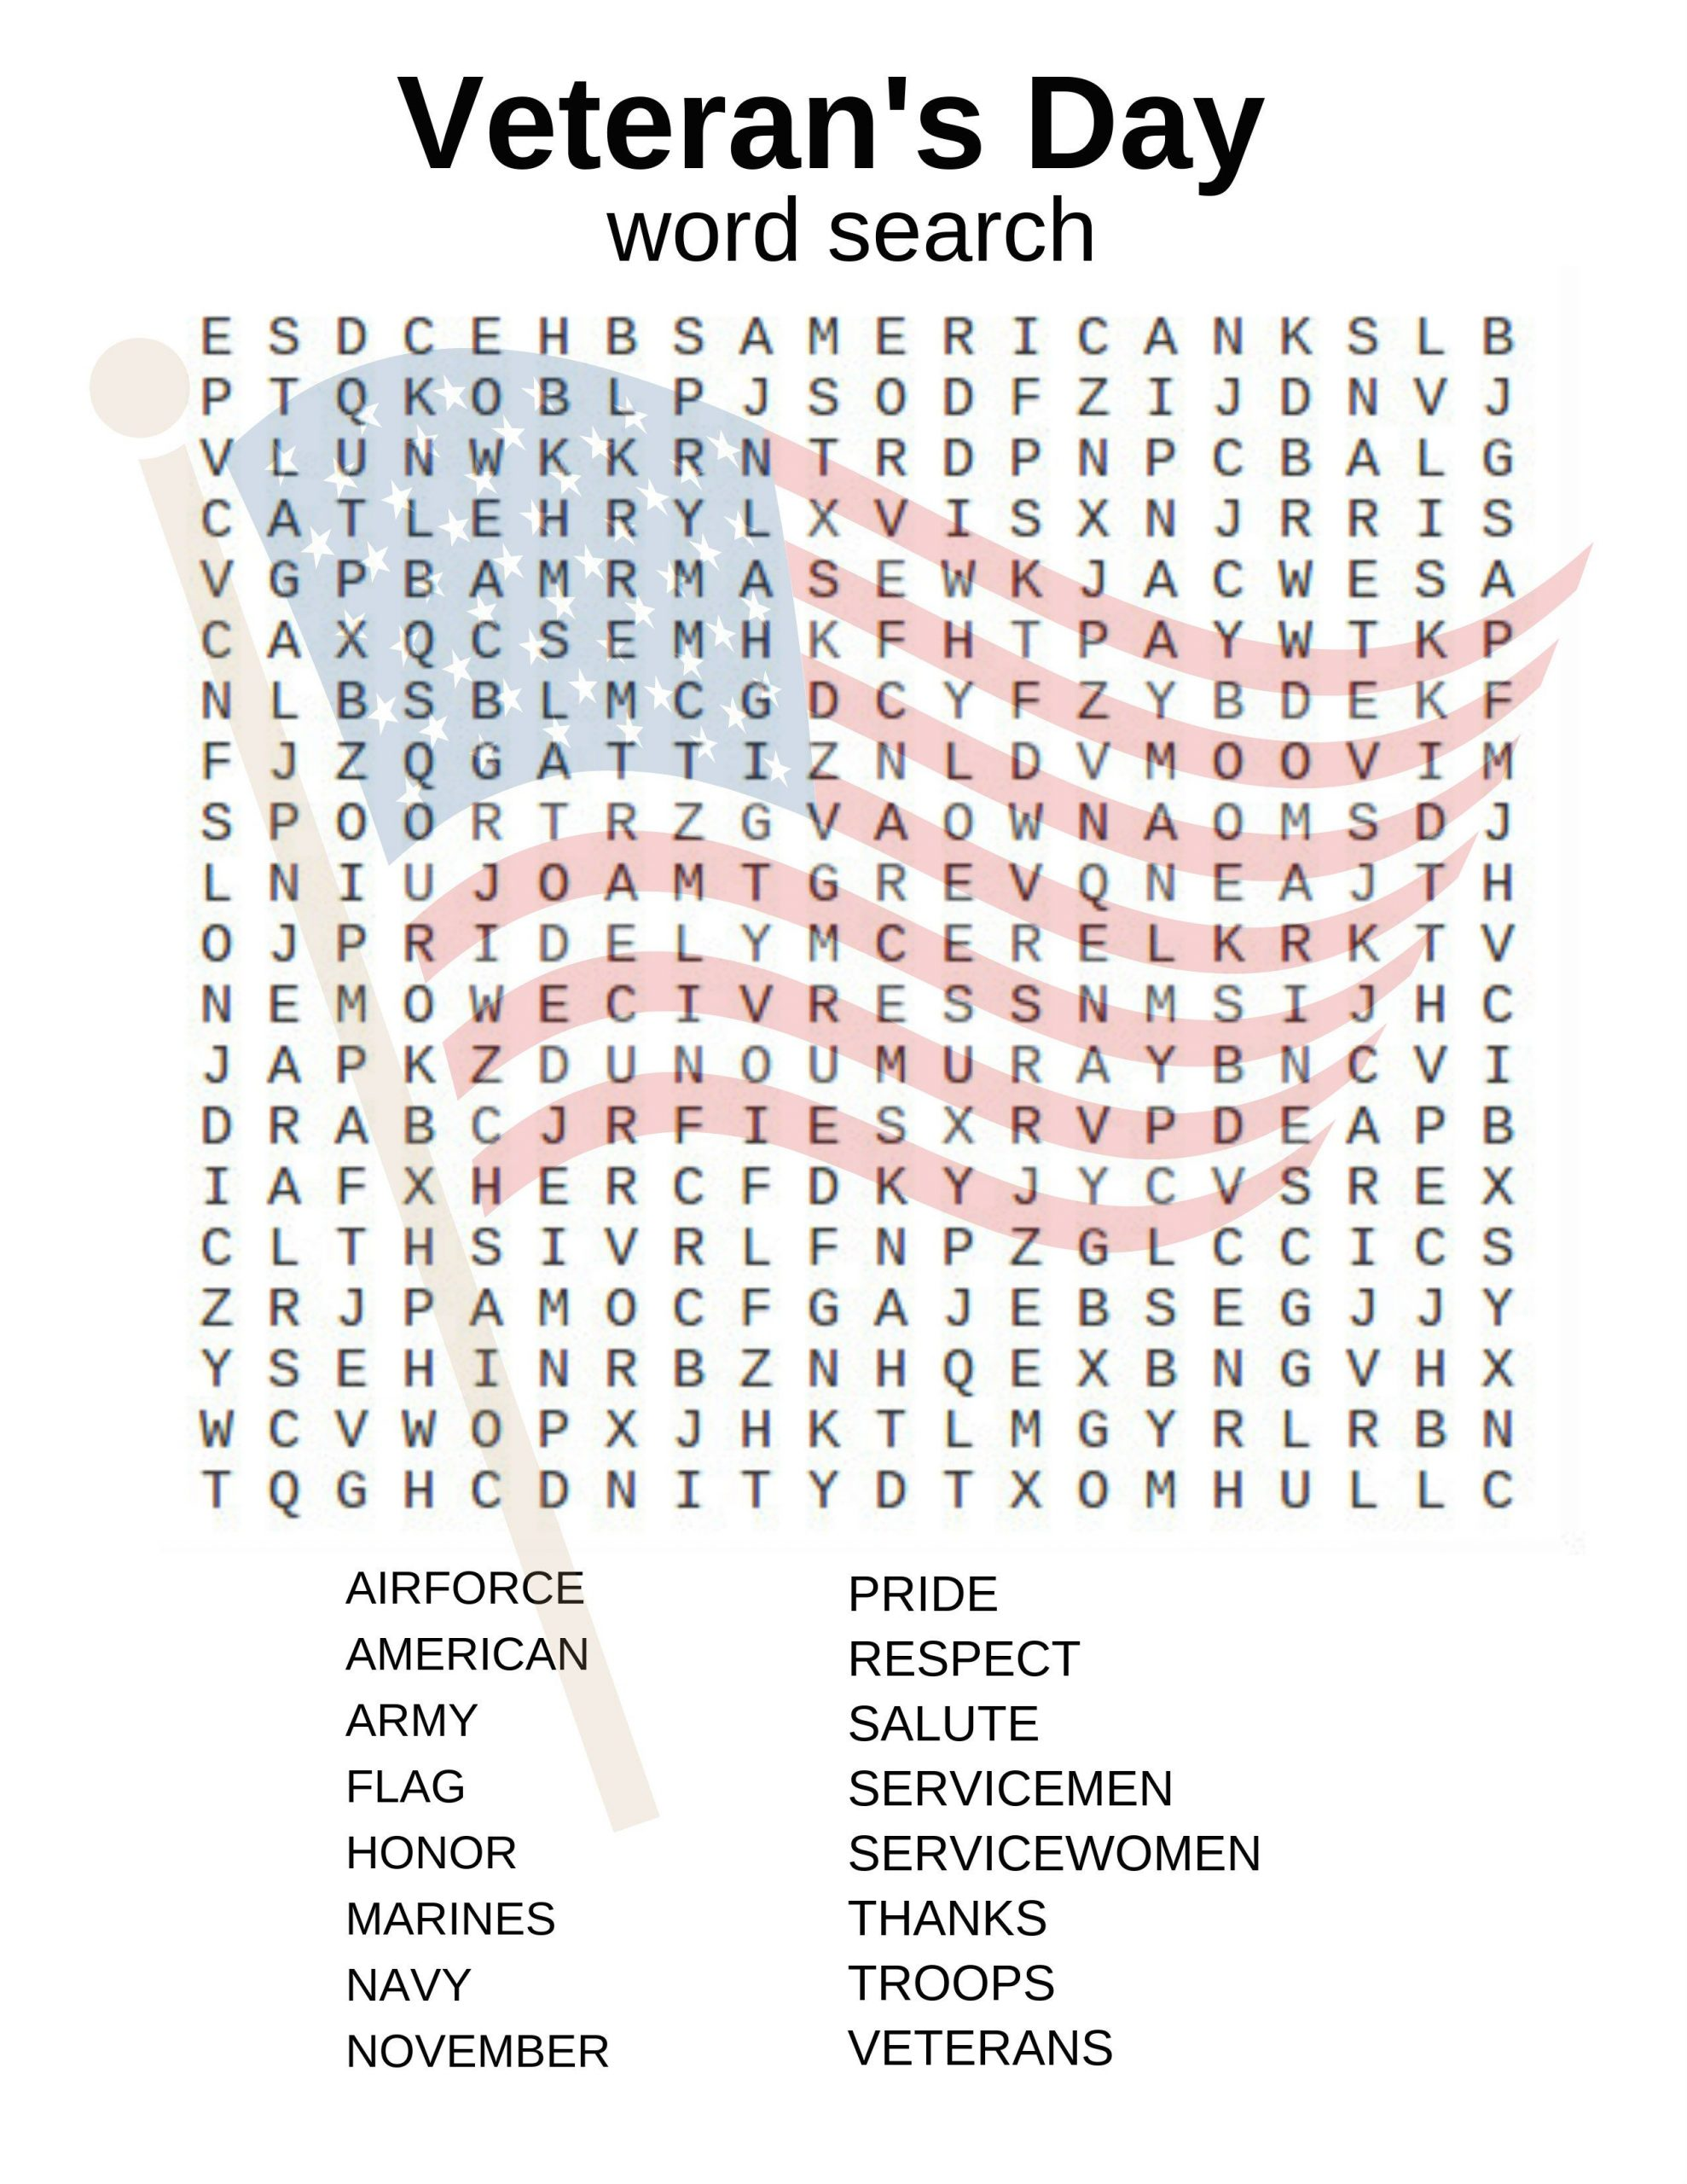 Veteran's Day Word Search And Other Activities! | Veterans